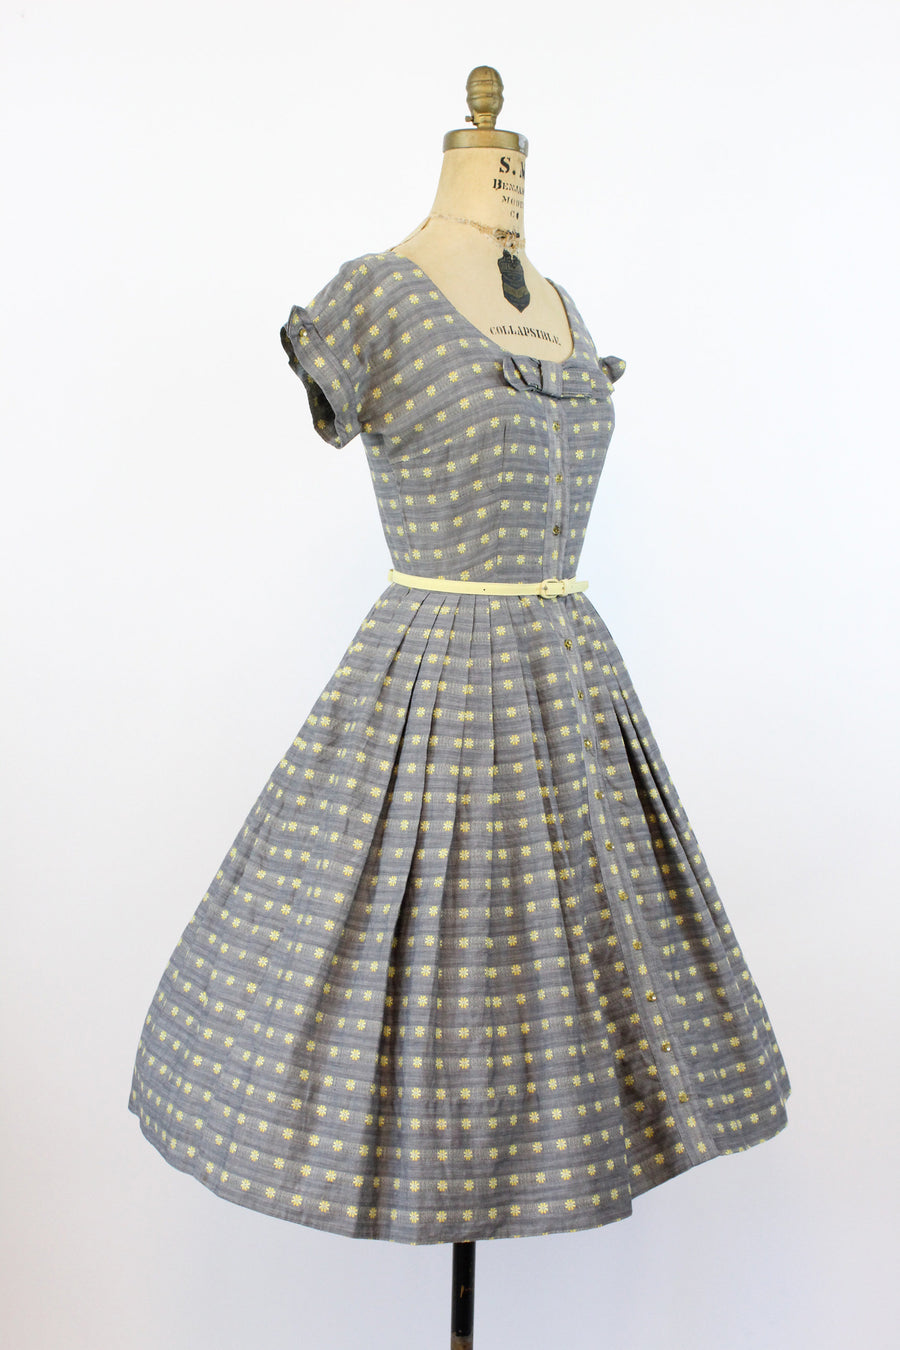 1950s floral daisy print cotton dress | vintage full skirt floral | xs small